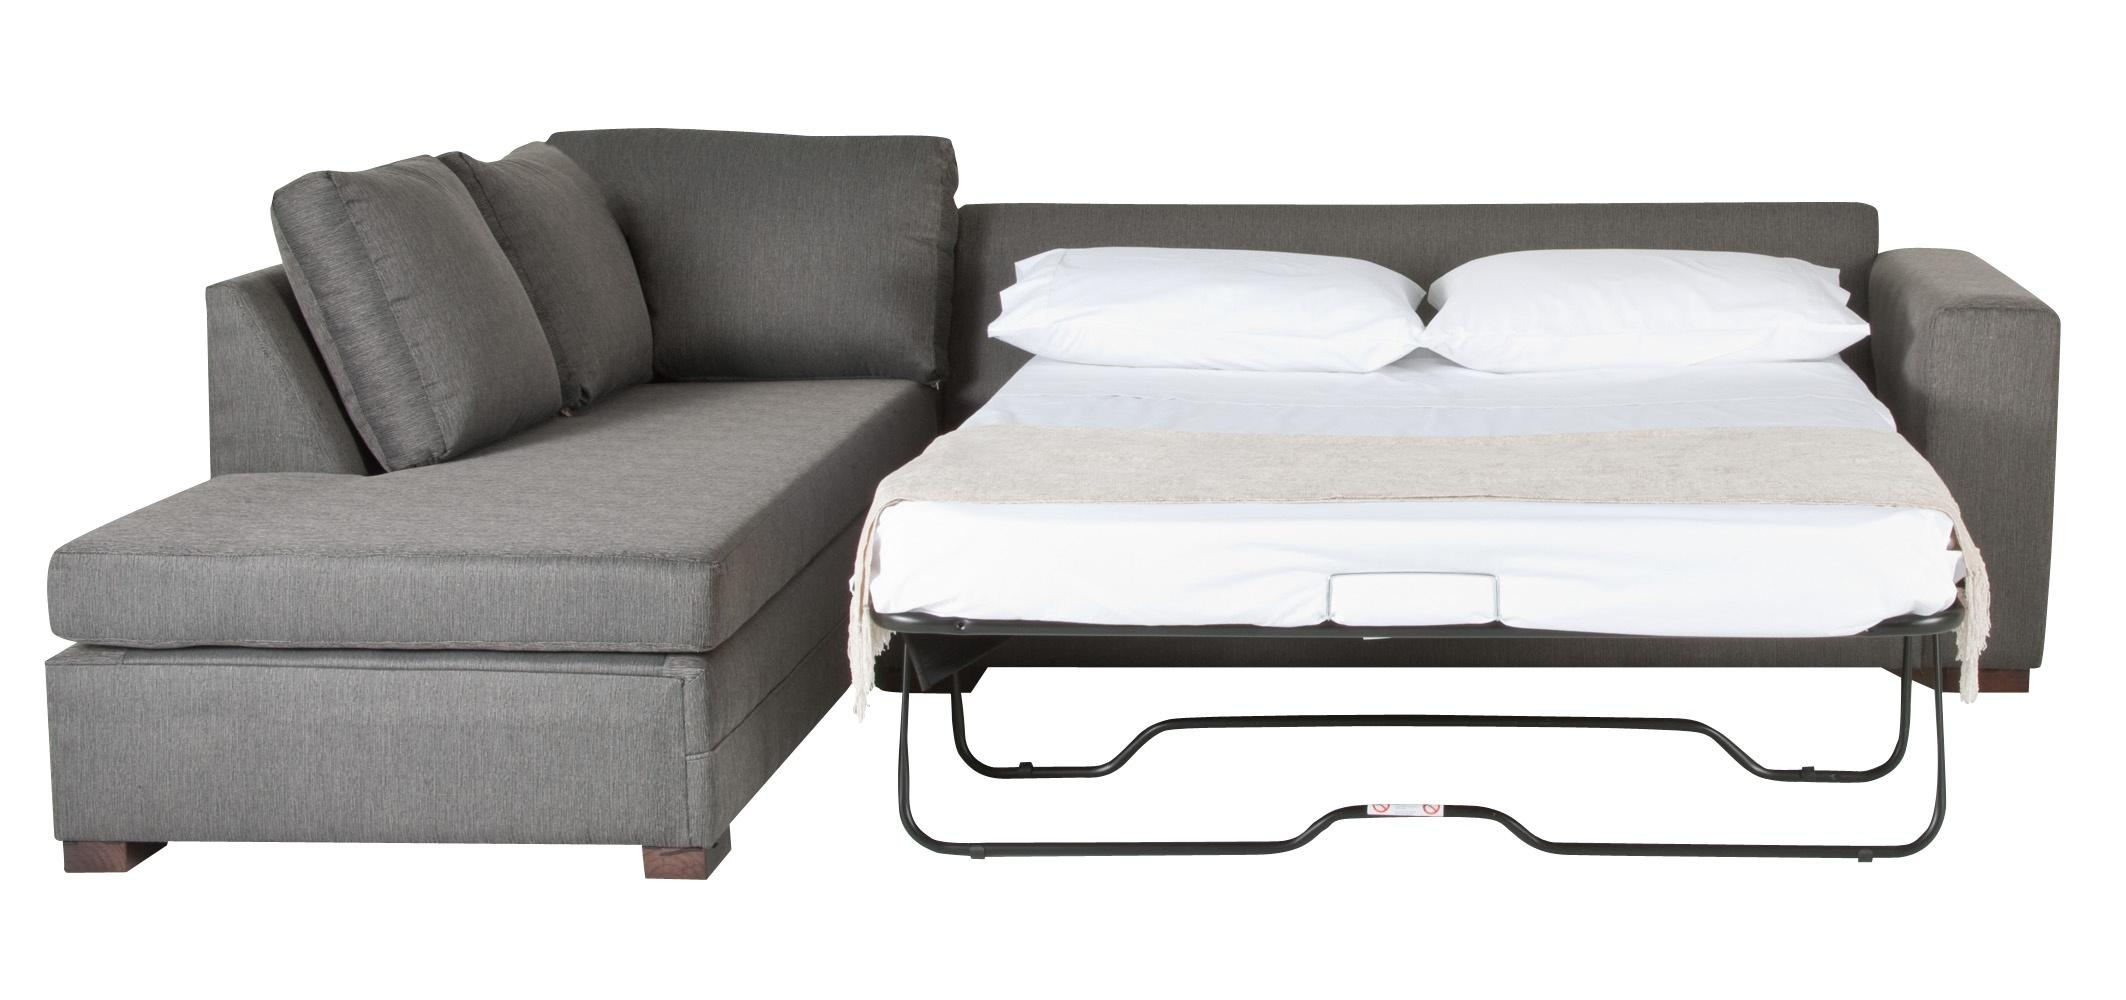 Perfect Corner Sleeper Sofa Bed 60 With Additional High Sleeper With High Sleeper With Desk And Sofa (Image 15 of 20)